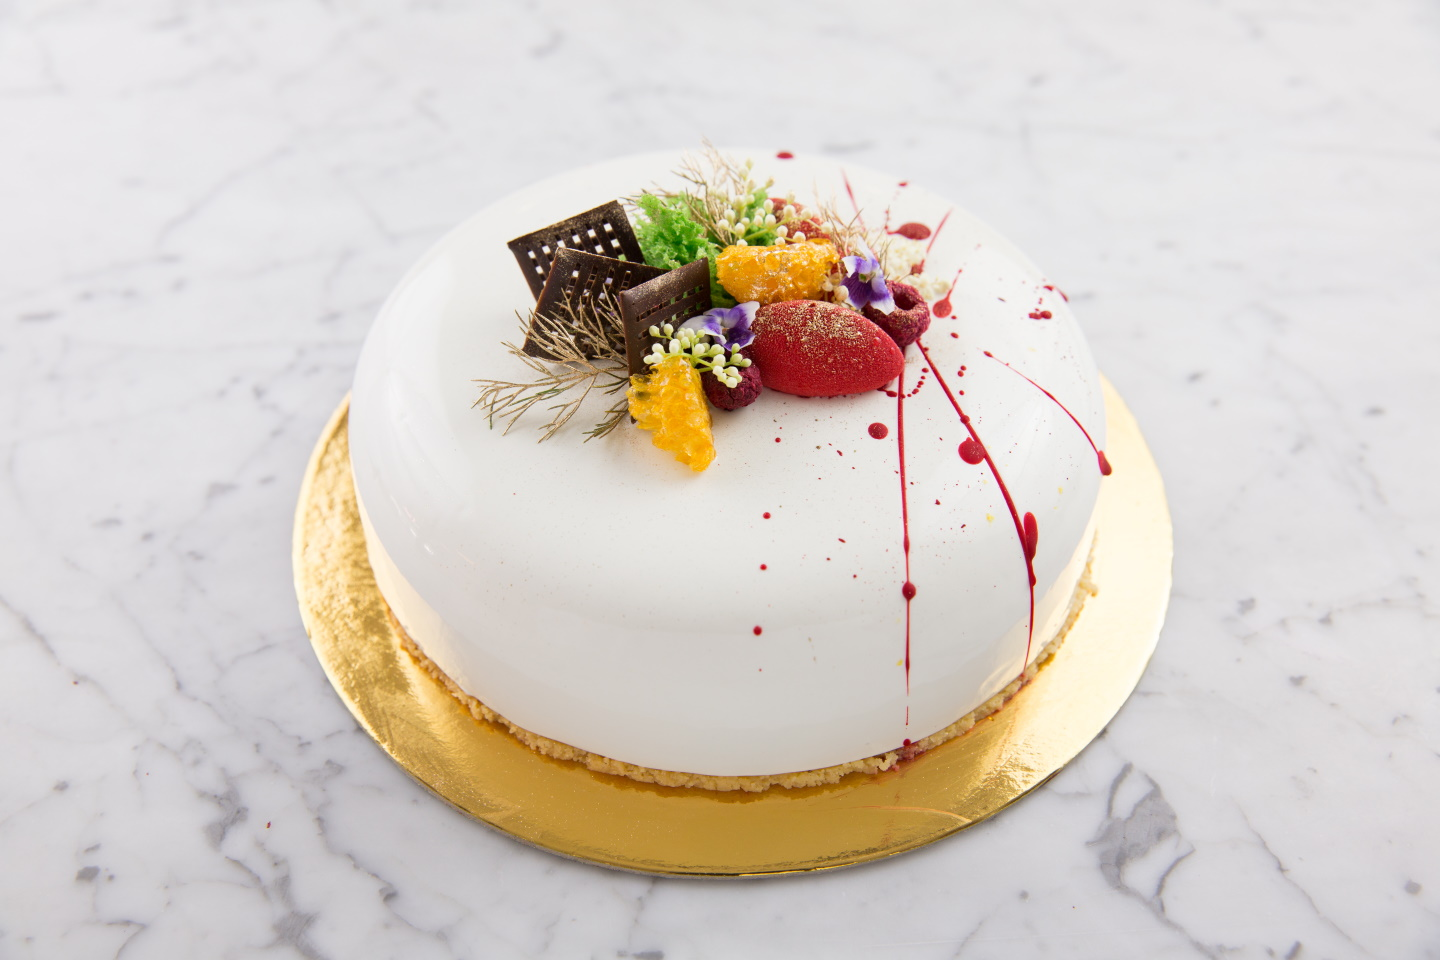 Celebration Cakes - Whatever the occasion there is always a reason for celebration. Let us take care of your special day with our custom Celebration Cakes.